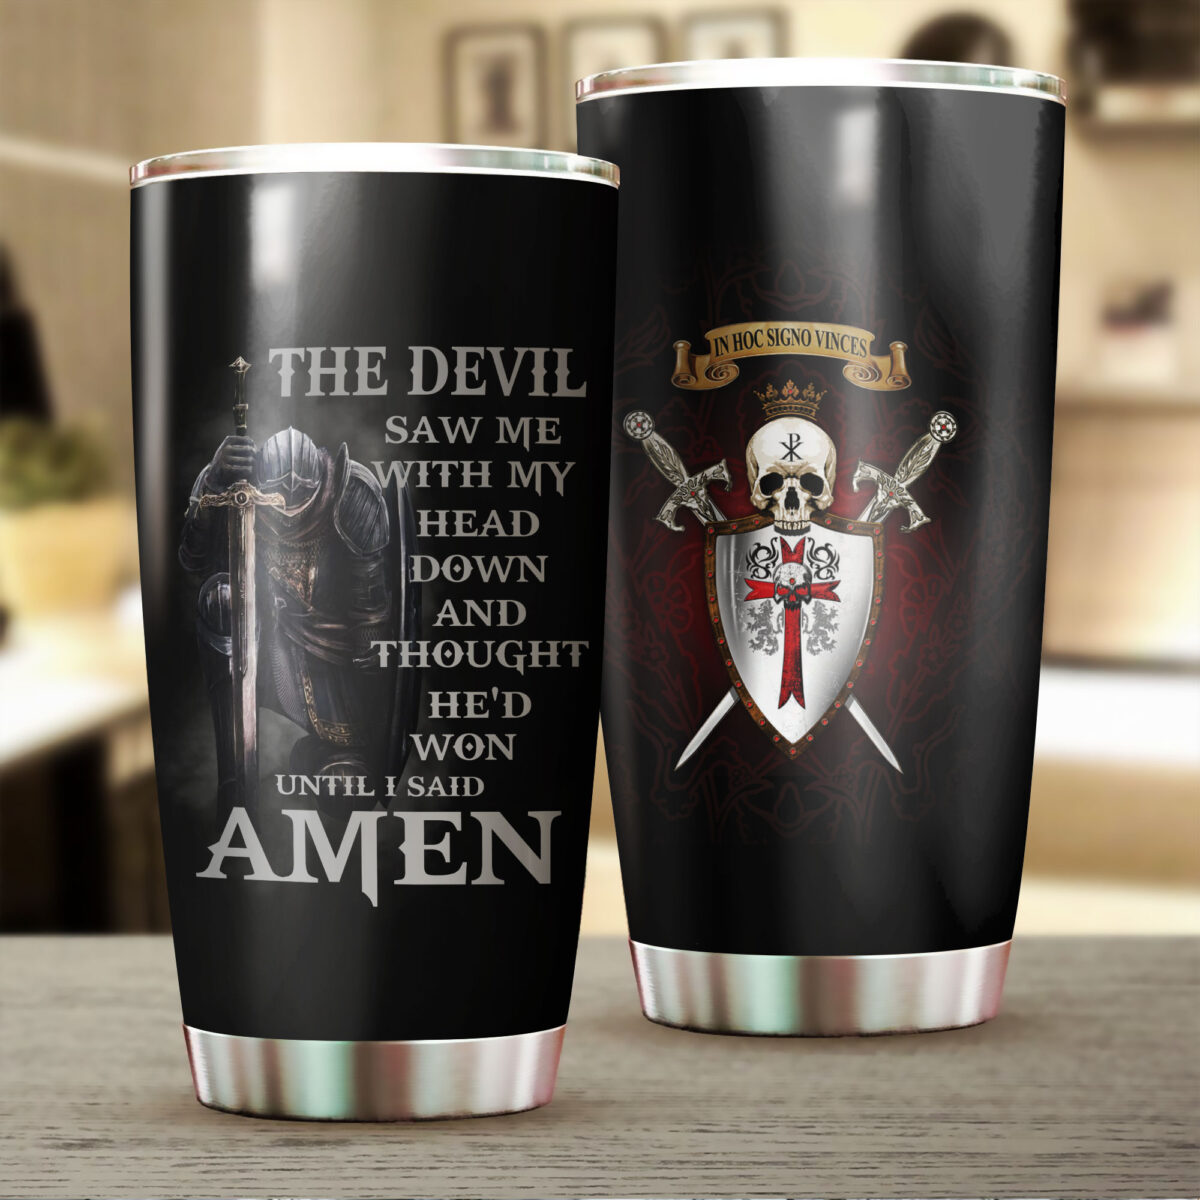 knights templar the devil saw me with my head down and thought hed won until i said amen stainless steel tumbler 2